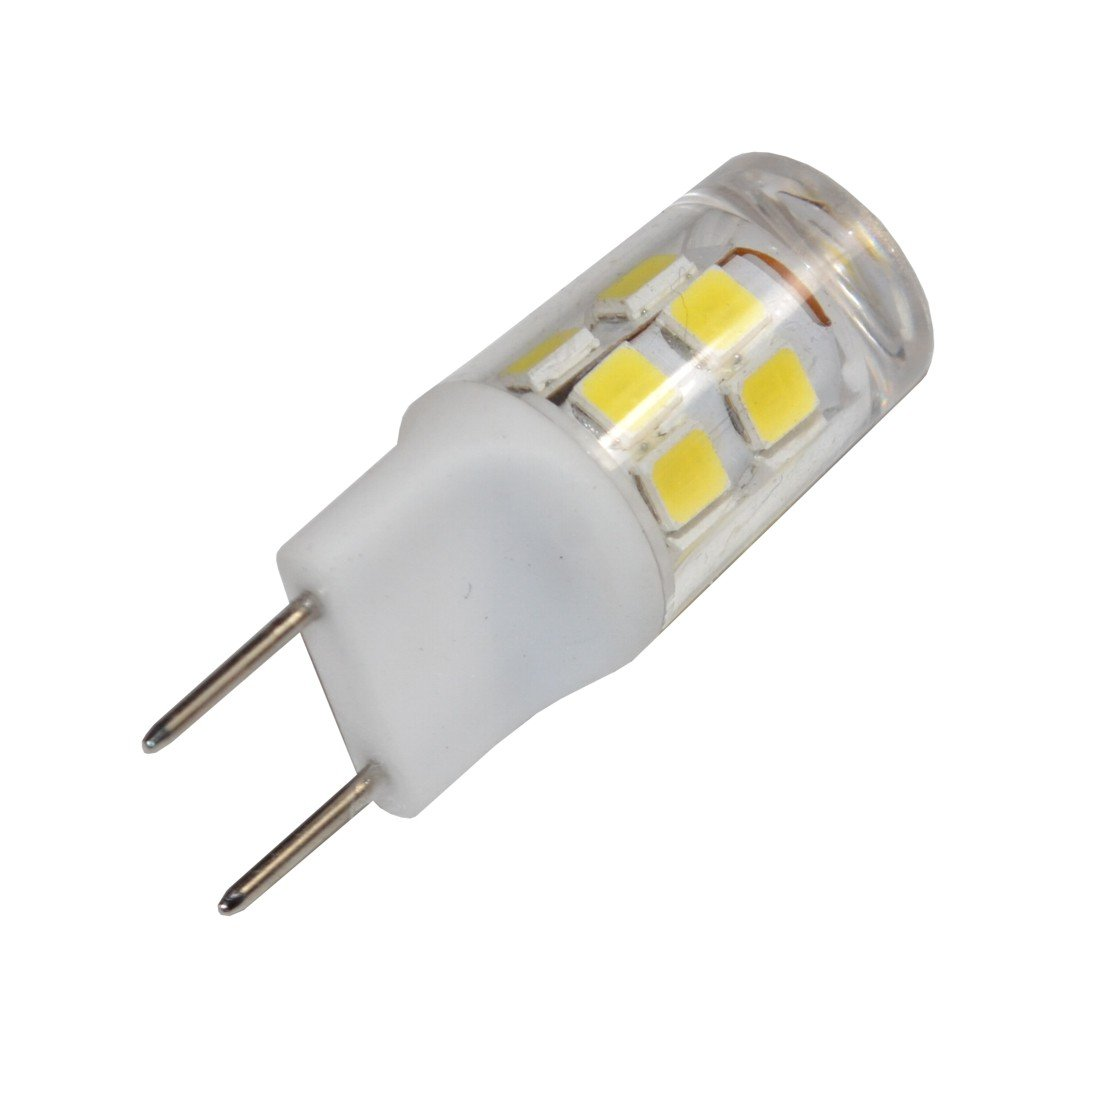 HQRP G8 Bi-Pin 17 LEDs Light Bulb SMD 2835 Cool White for GE Over The Stove Microwave Oven Plus Coaster